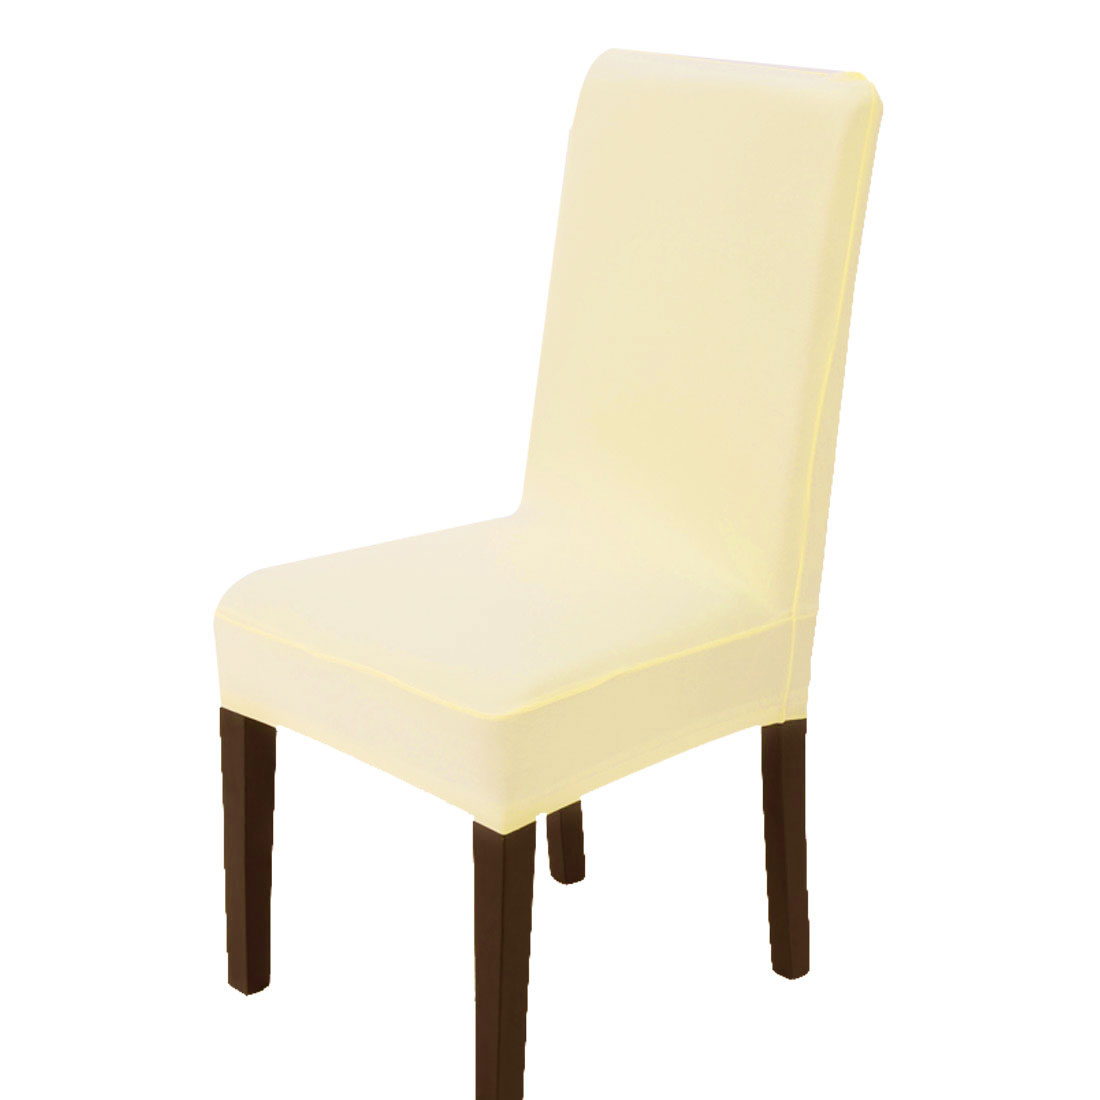 ballard designs dining chair slipcovers best hunting chairs for ground blinds parsons cool with